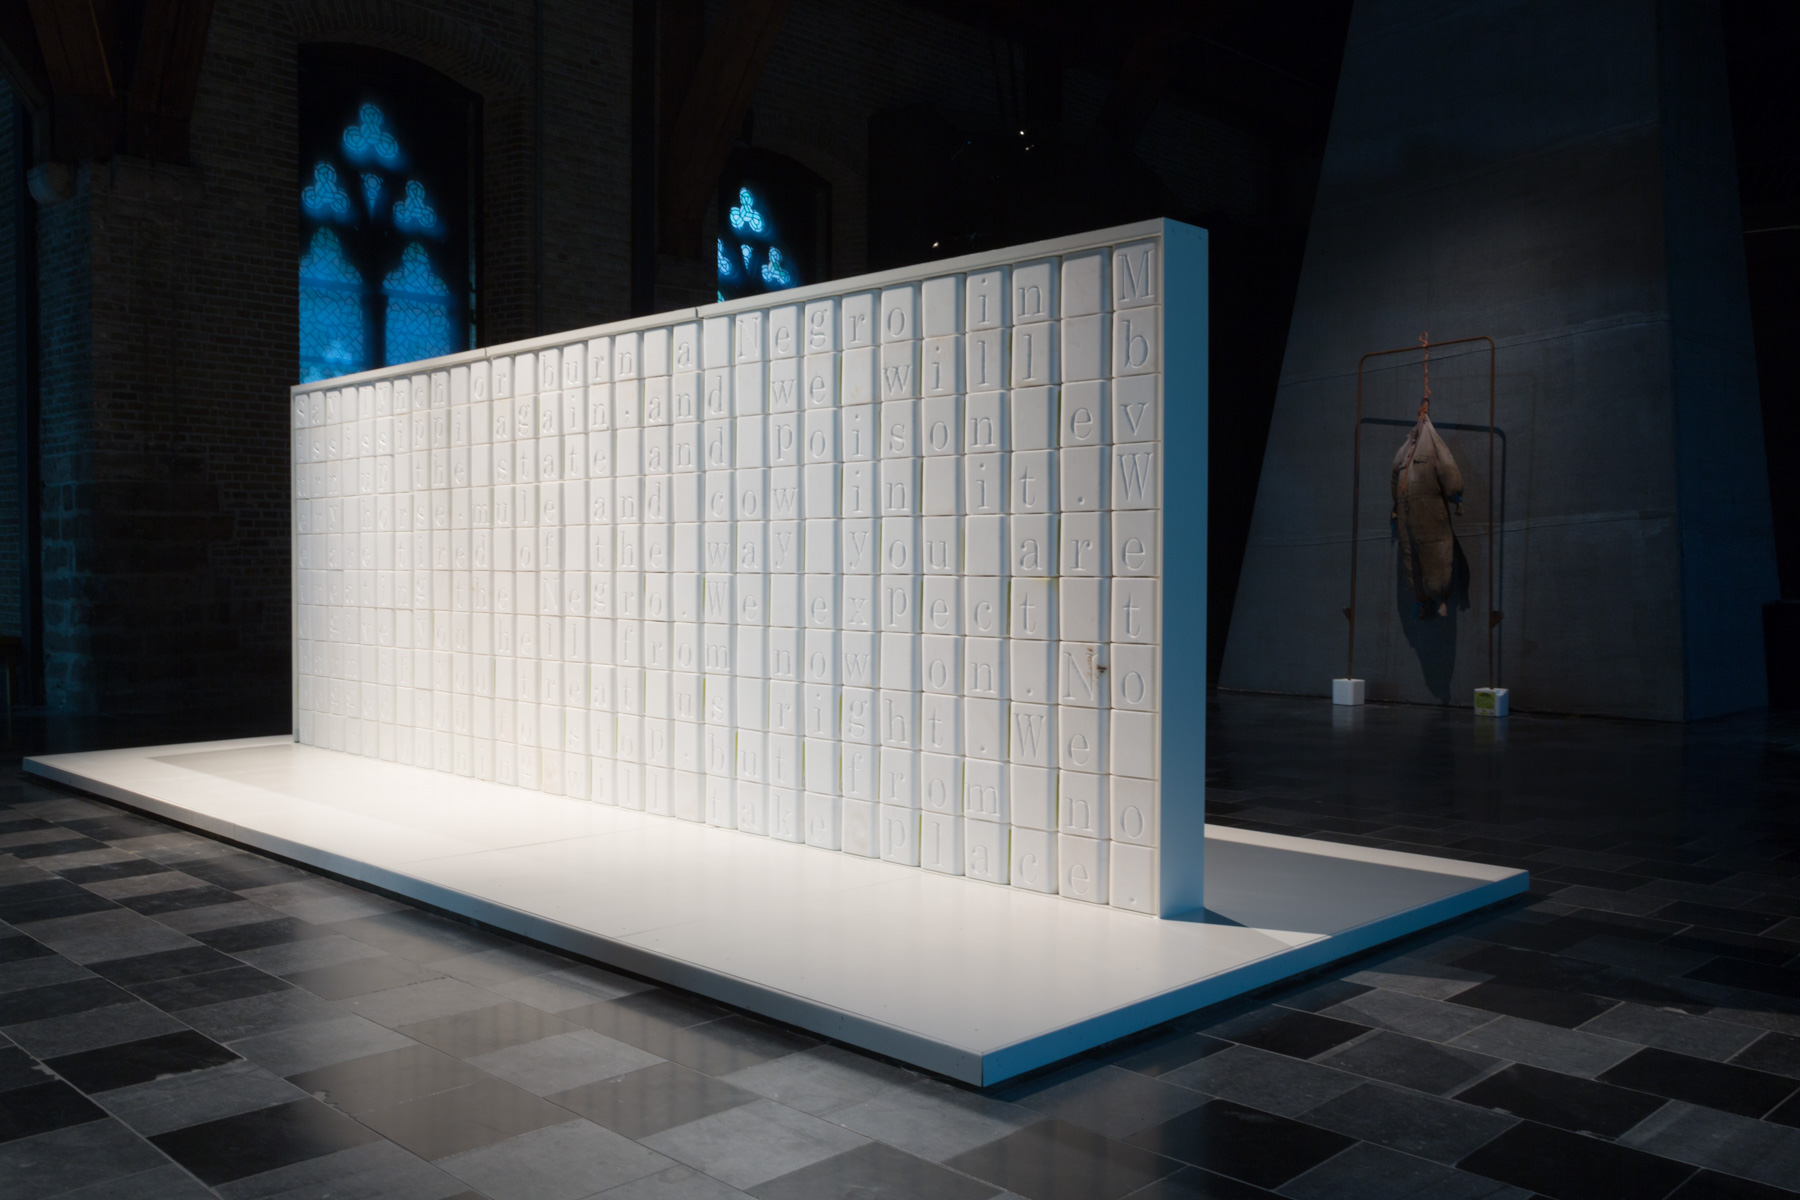 Wilmer Wilson IV,  Measures Not Men, 2017, salt blocks, aluminum, wood, 8 x 20 x 6.25 feet (96.5 x 236 x 75 inches, 245 x 600 x 190 cm).Installation view: Fire Bill's Spook Kit, In Flanders Fields Museum, Ypres, Belgium, through January 7, 2018.Image courtesy the artist and Connersmith Gallery